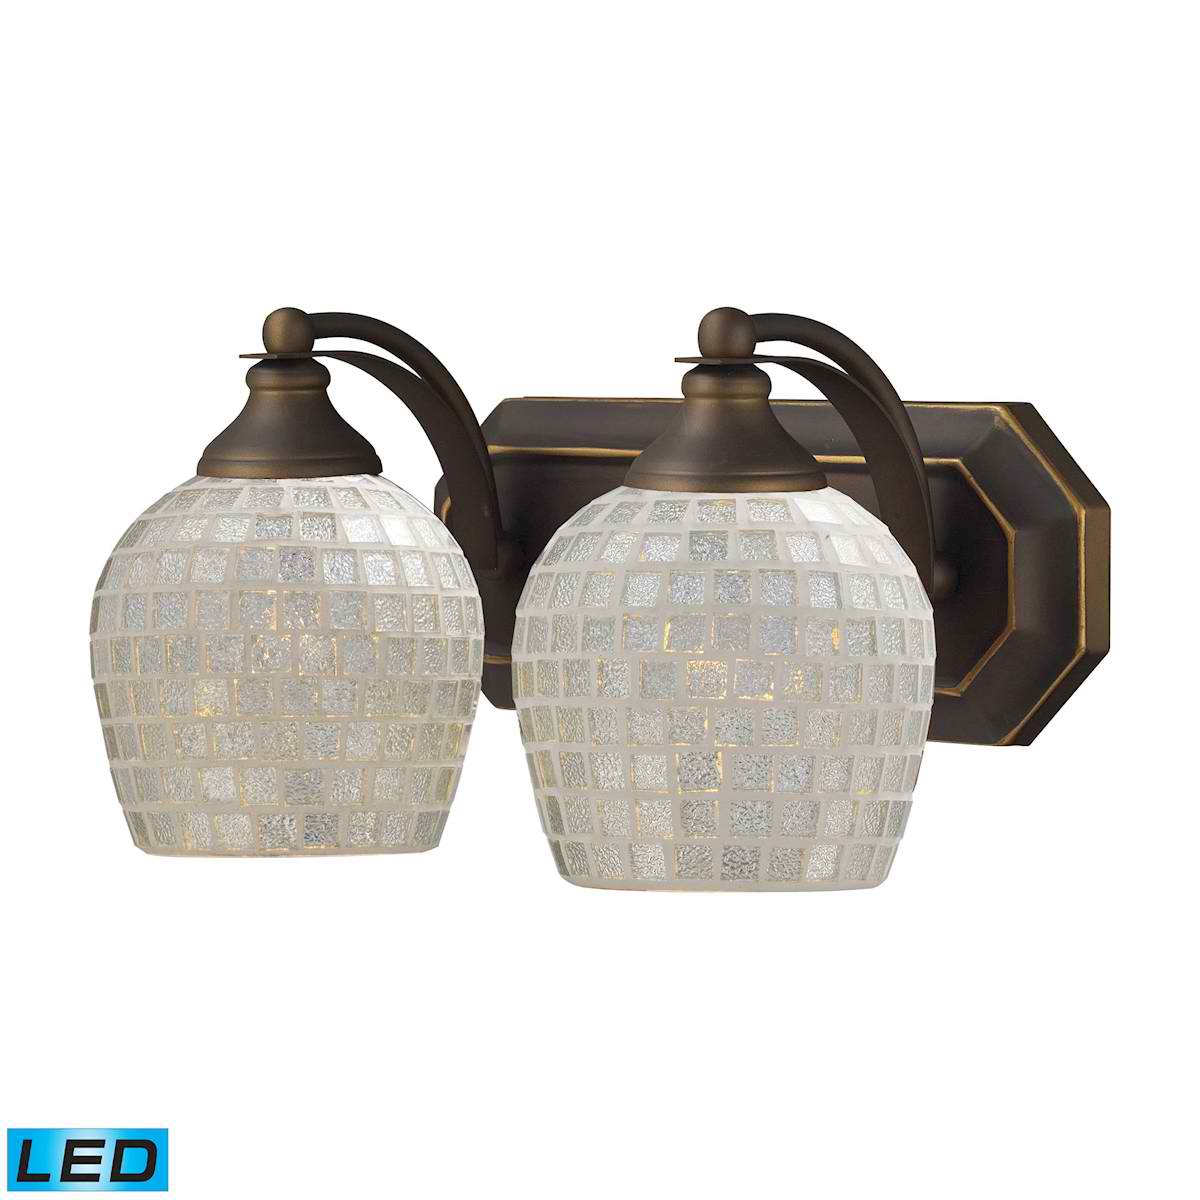 2 Light Vanity in Aged Bronze and Silver Mosaic Glass - LED, 800 Lumens (1600 Lumens Total) with Full Scale